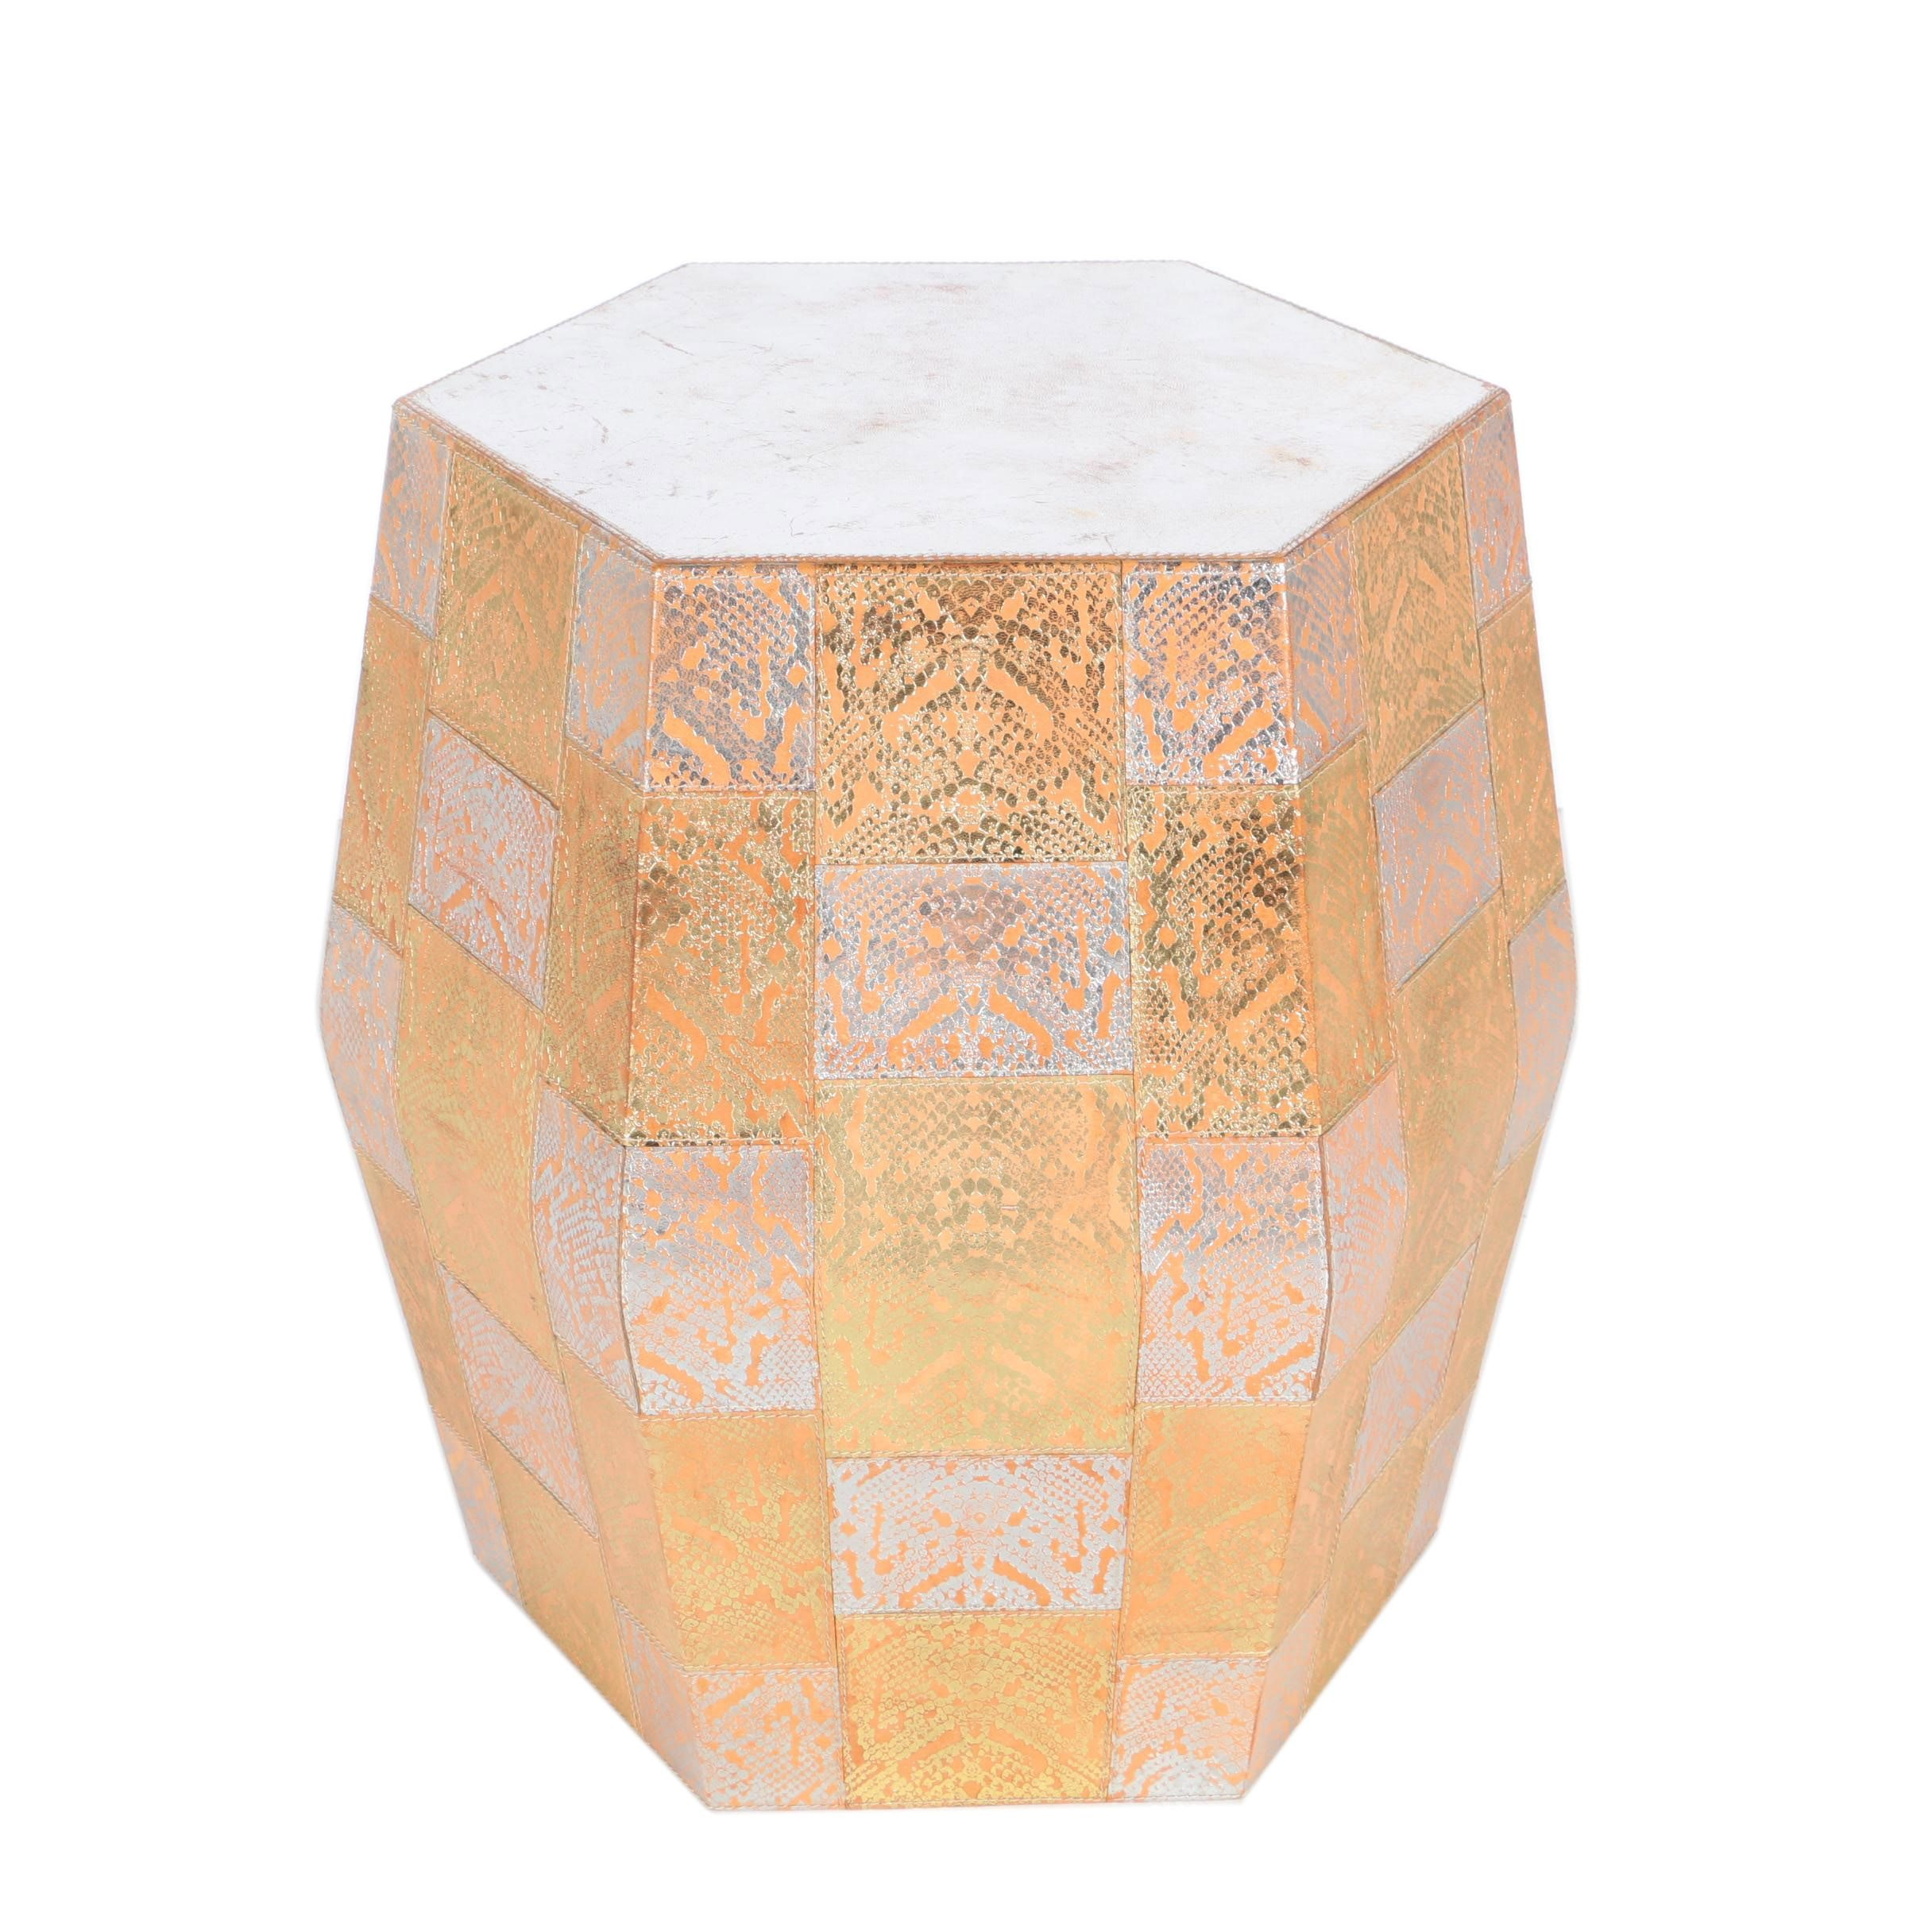 East Indian Hexagonal Leather-Covered Metal Occasional Table